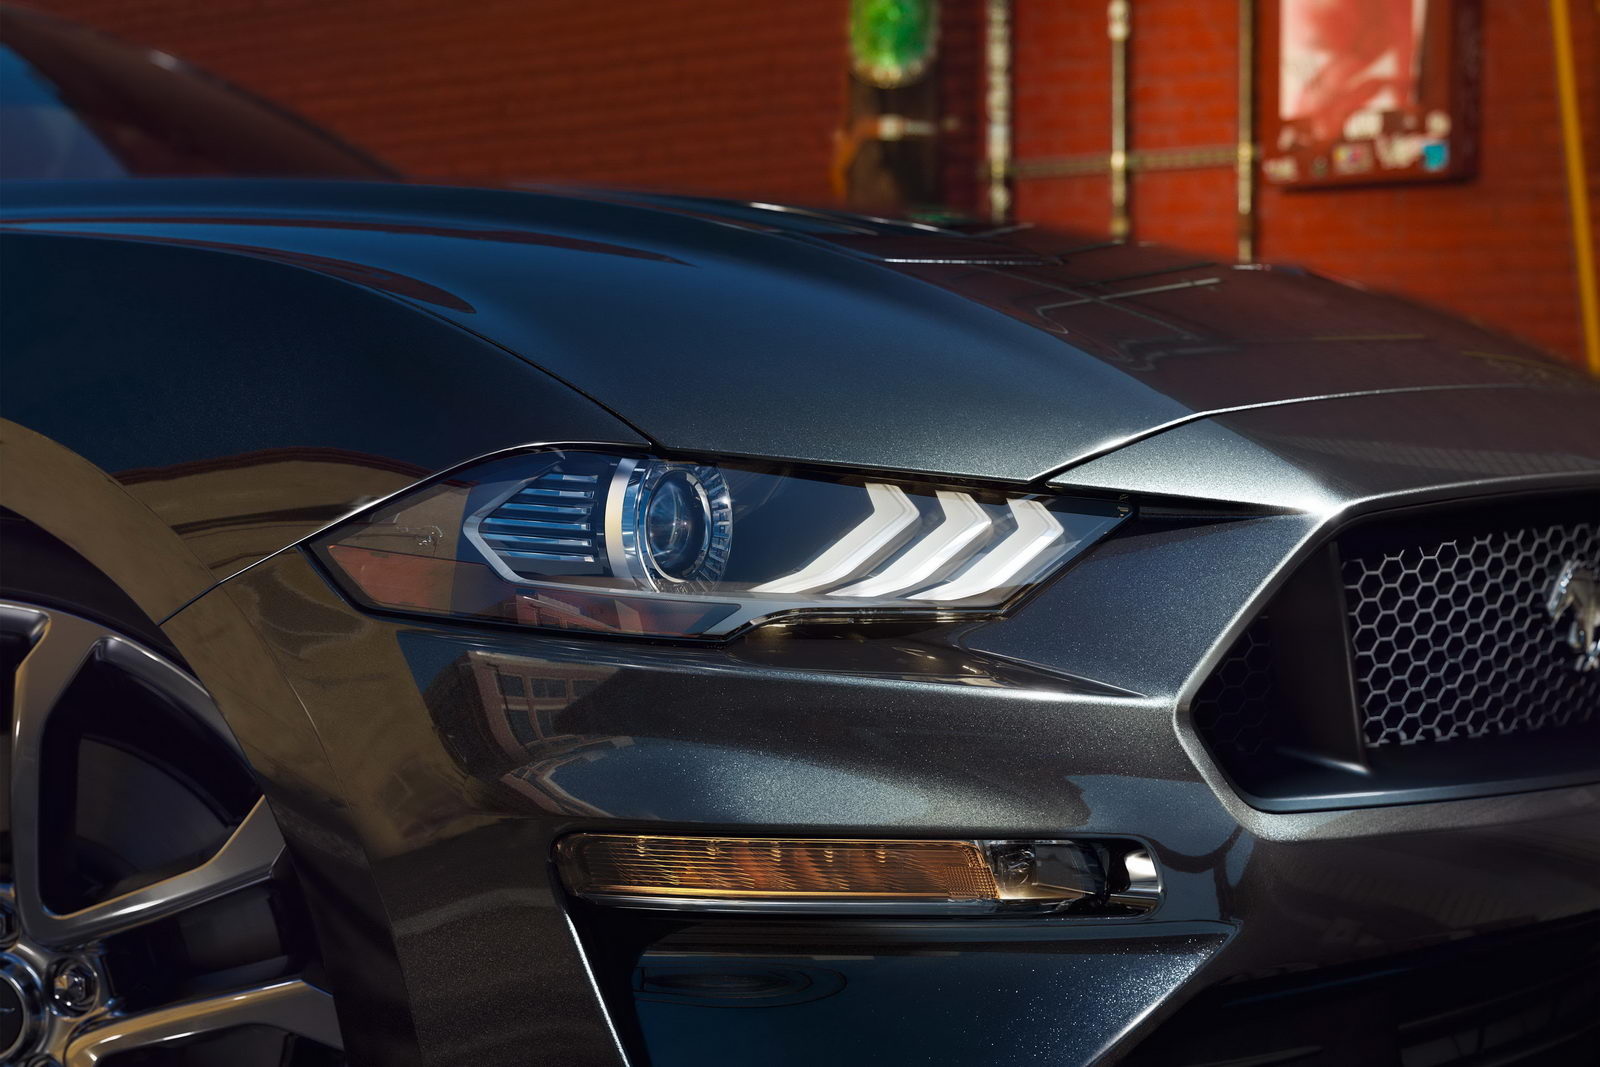 Ford Mustang GT facelift 2018 13